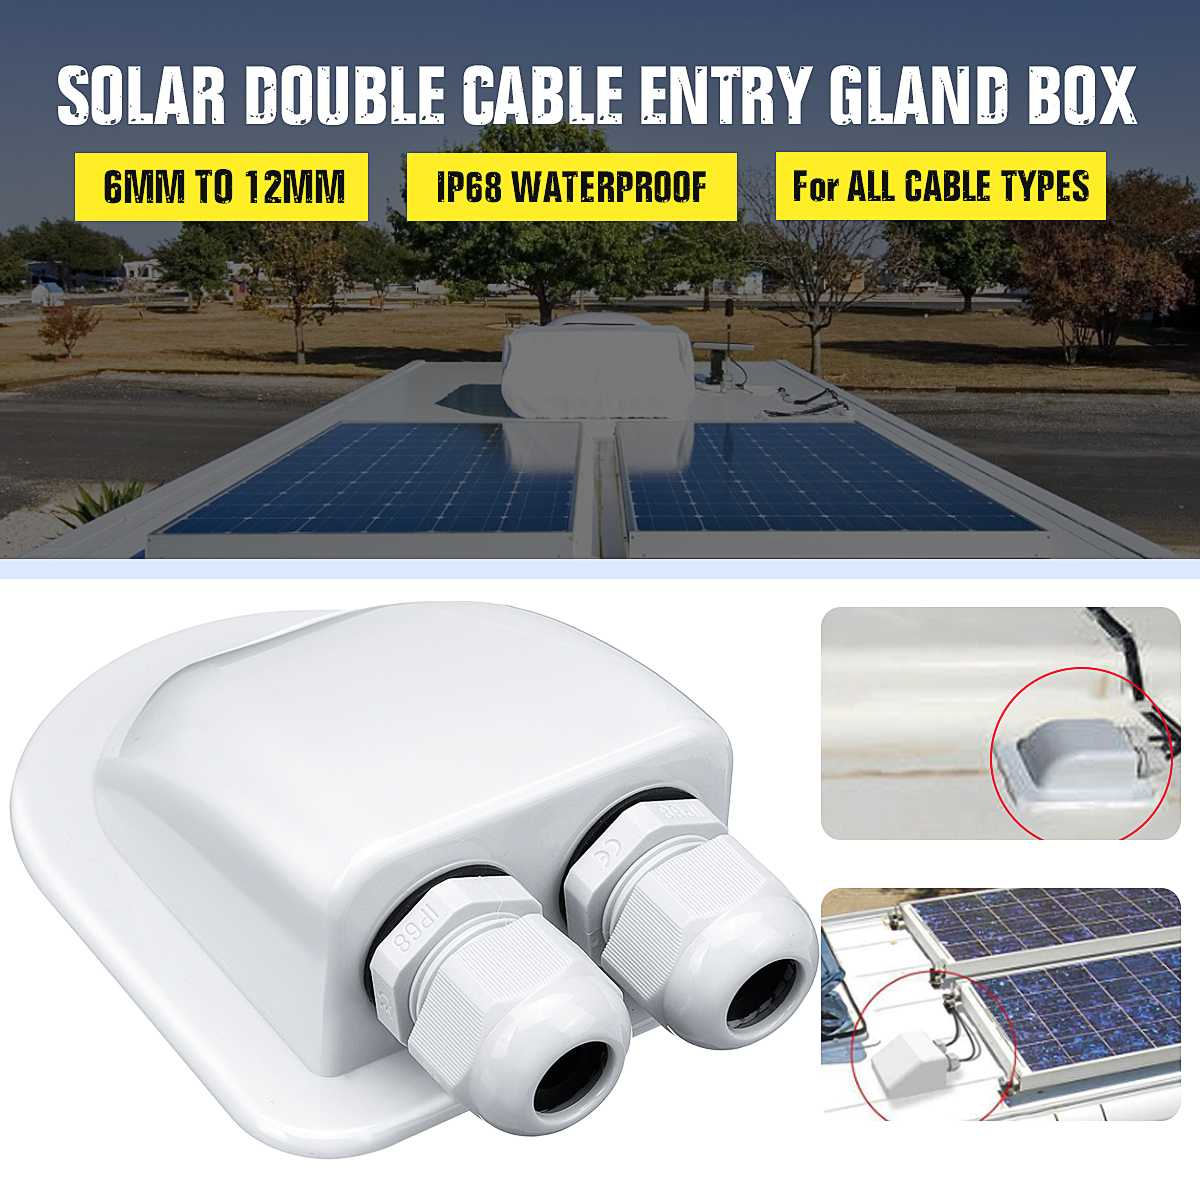 6 To 12mm Waterproof ABS Solar Double Twin Two Holes Cable Entry Gland Box Curved Cable Connector Holder For Rv Campervan Boat